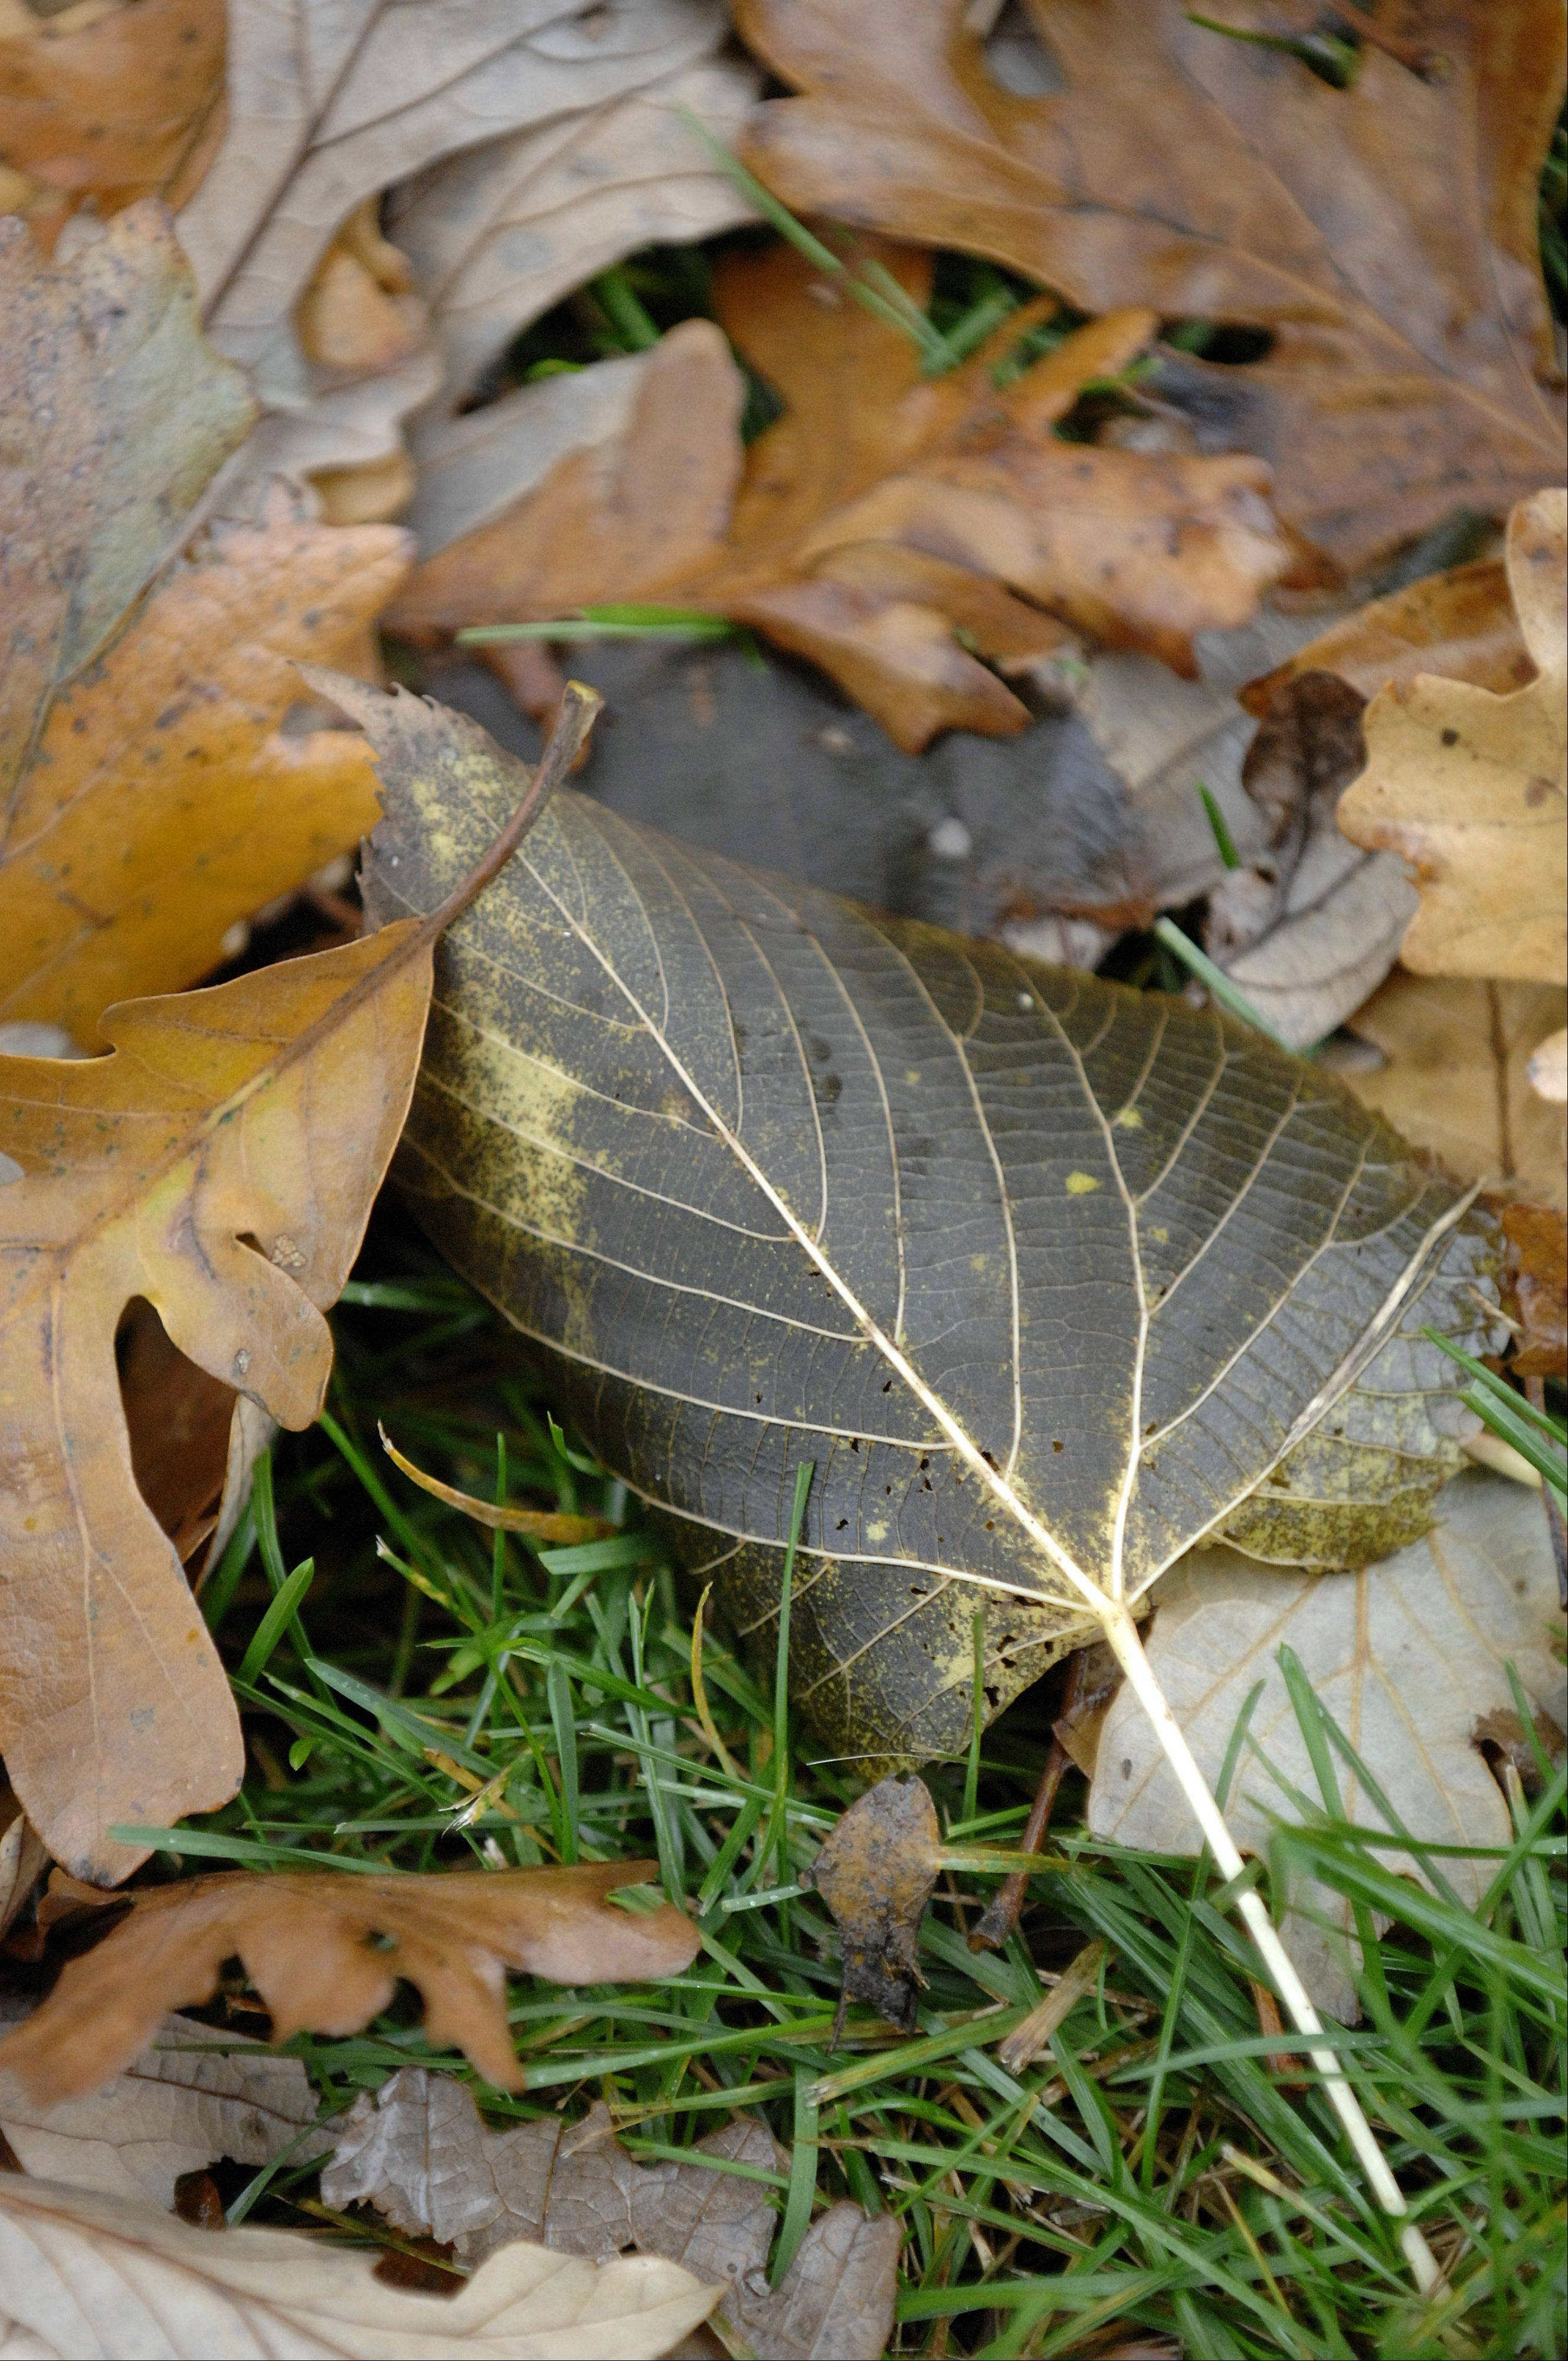 Fallen leaves are one of the few things it's OK to collect from forest preserves.